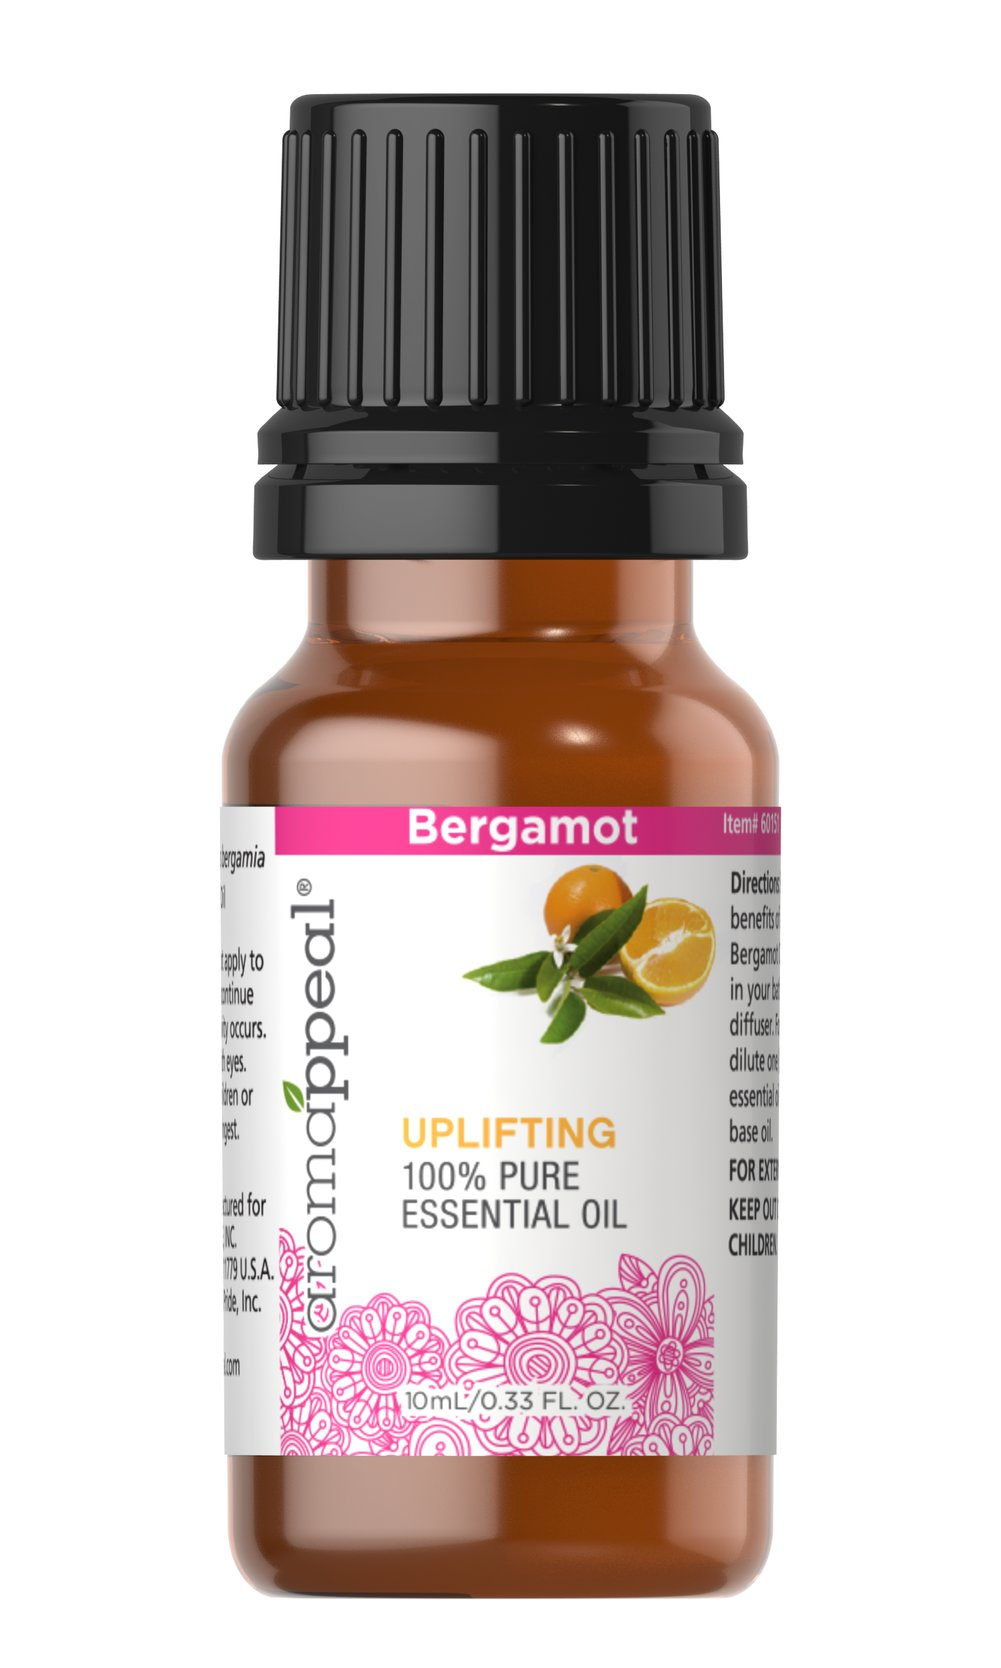 "Bergamot 100% Pure Essential Oil <p>Gently coax yourself into a state of utter tranquility and serenity with the fresh, fruity scent of Bergamot. This purifying oil is perfect for when you want to lull yourself into peaceful meditation. </p><ul><li><span class=""bold-pink"">Traditional Uses:</span> purifying and cleansing, tranquility and serenity, meditation.</li><li><span class=""bold-pink"">History:</span>  Gently coa"